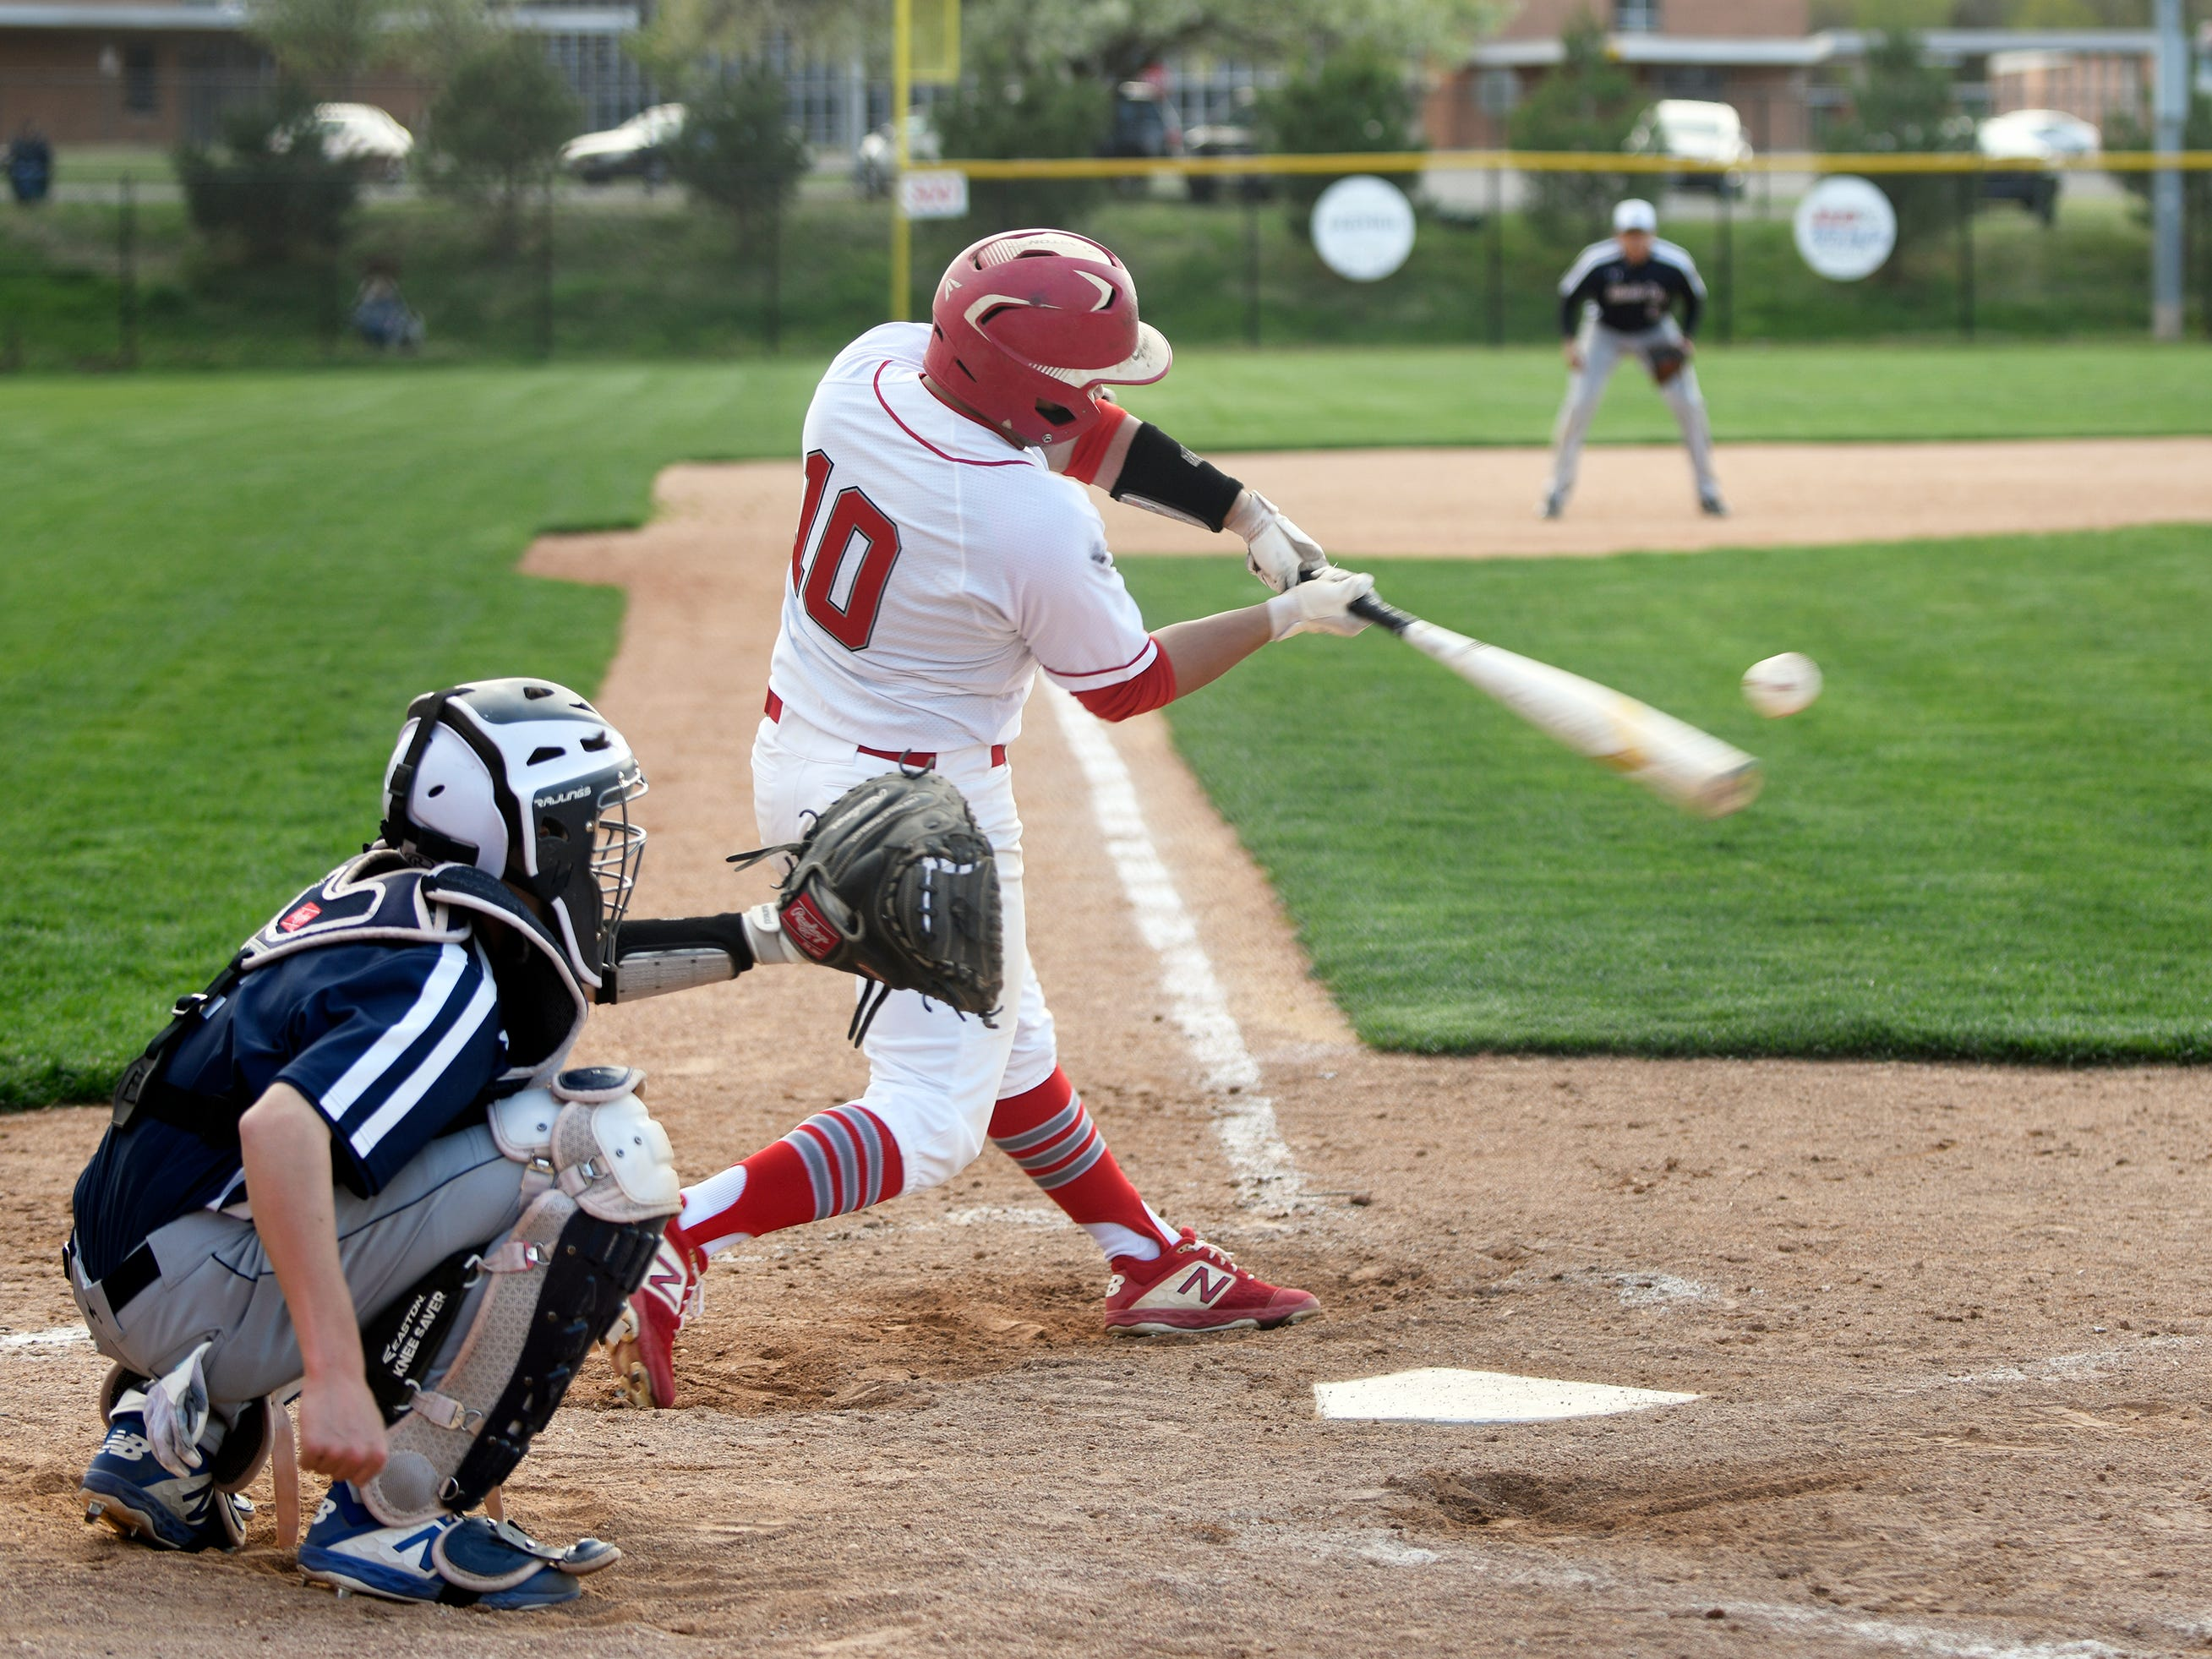 Vineland's Hector Perez at bat in a game against Atlantic City on Wednesday. The Fighting Clan topped the Vikings 12-2.